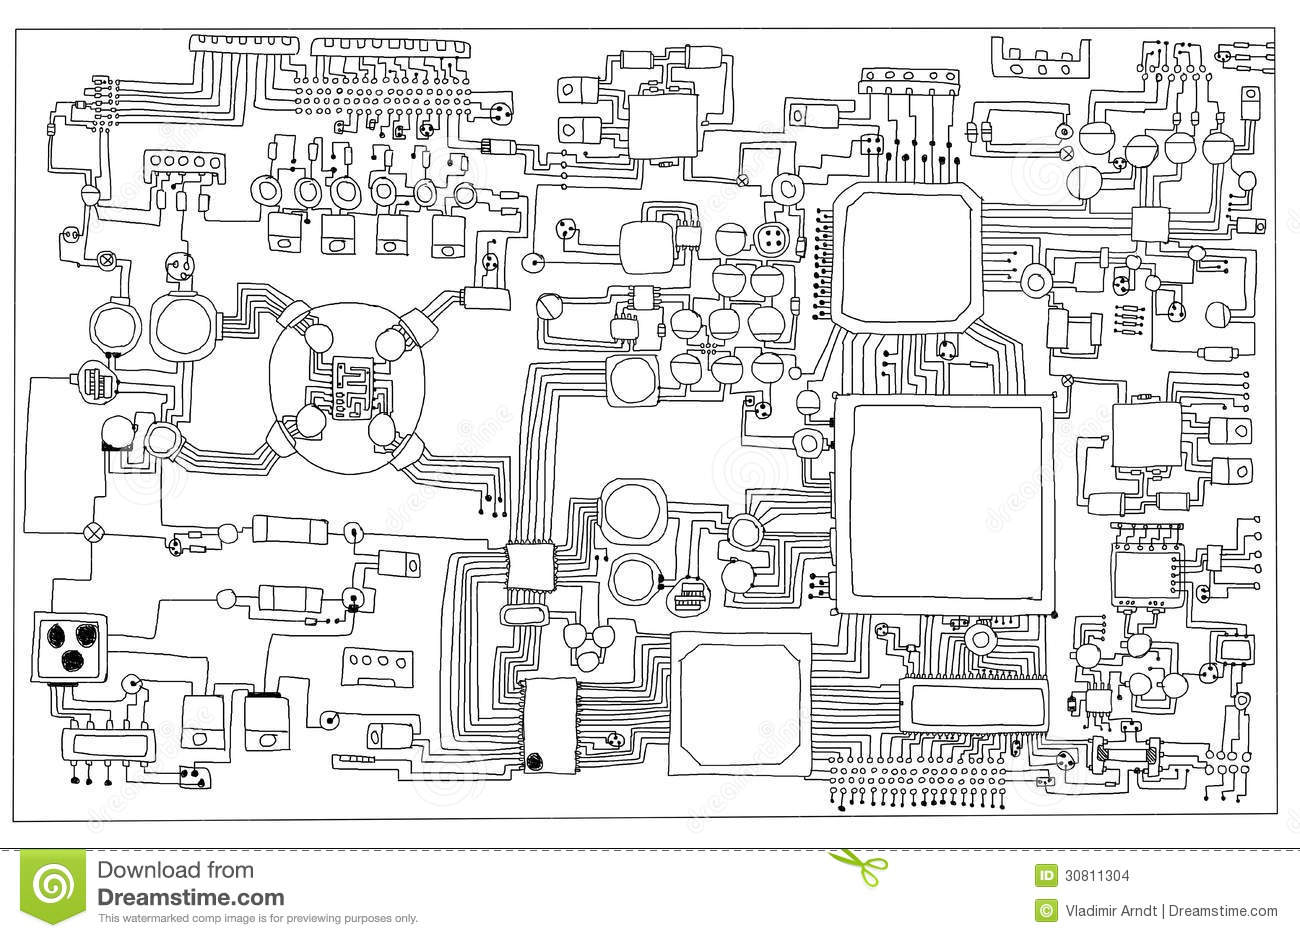 circuit board stock illustration illustration of drawn 30811304 rh dreamstime com Hand Drawn Note Diagrams Notes in Diagram